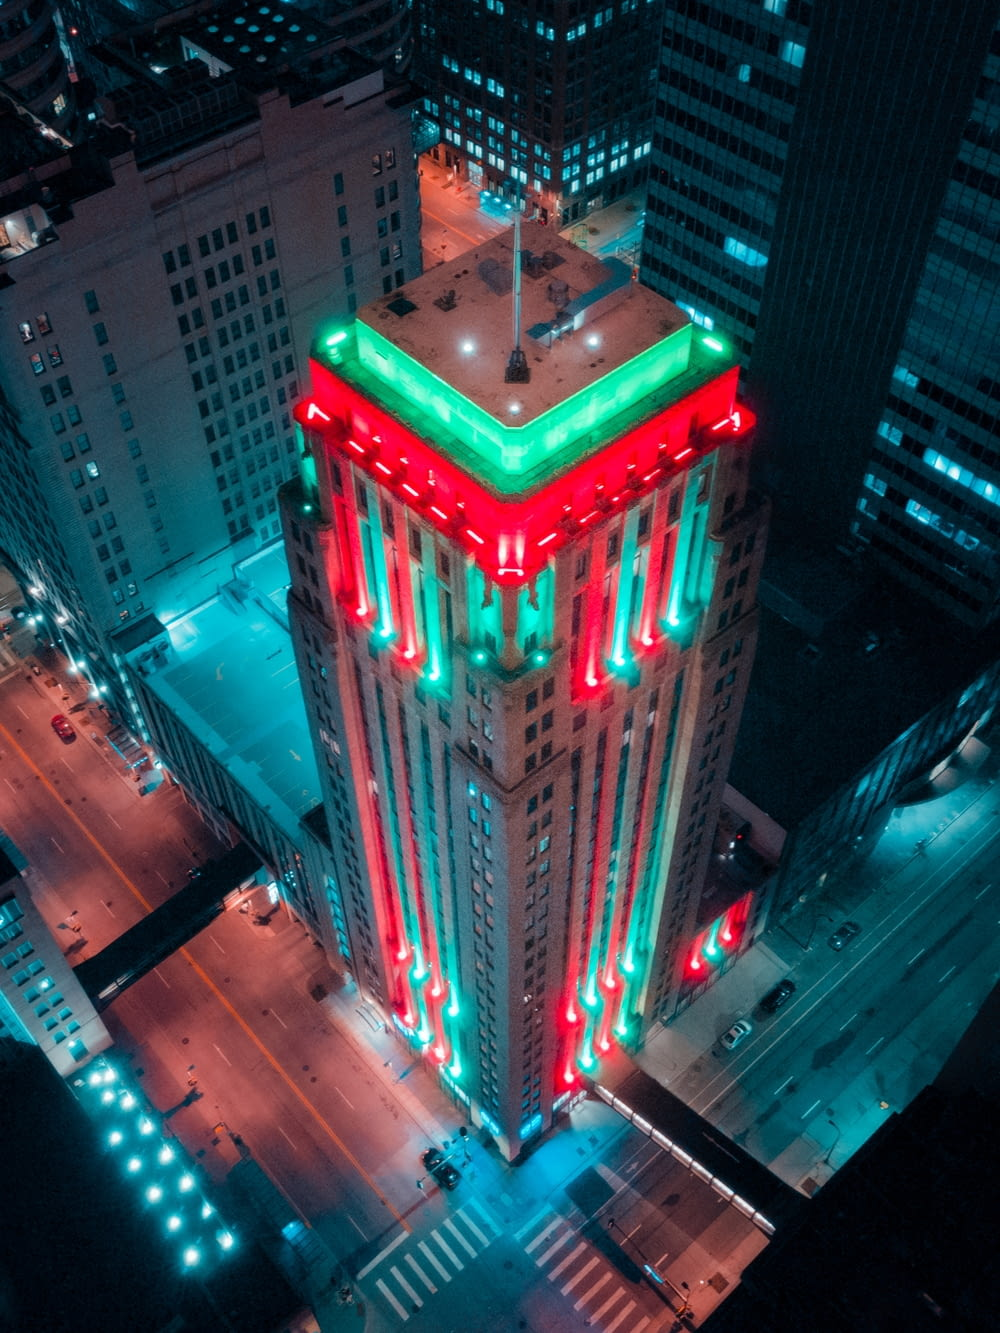 red and green lighted building during night time